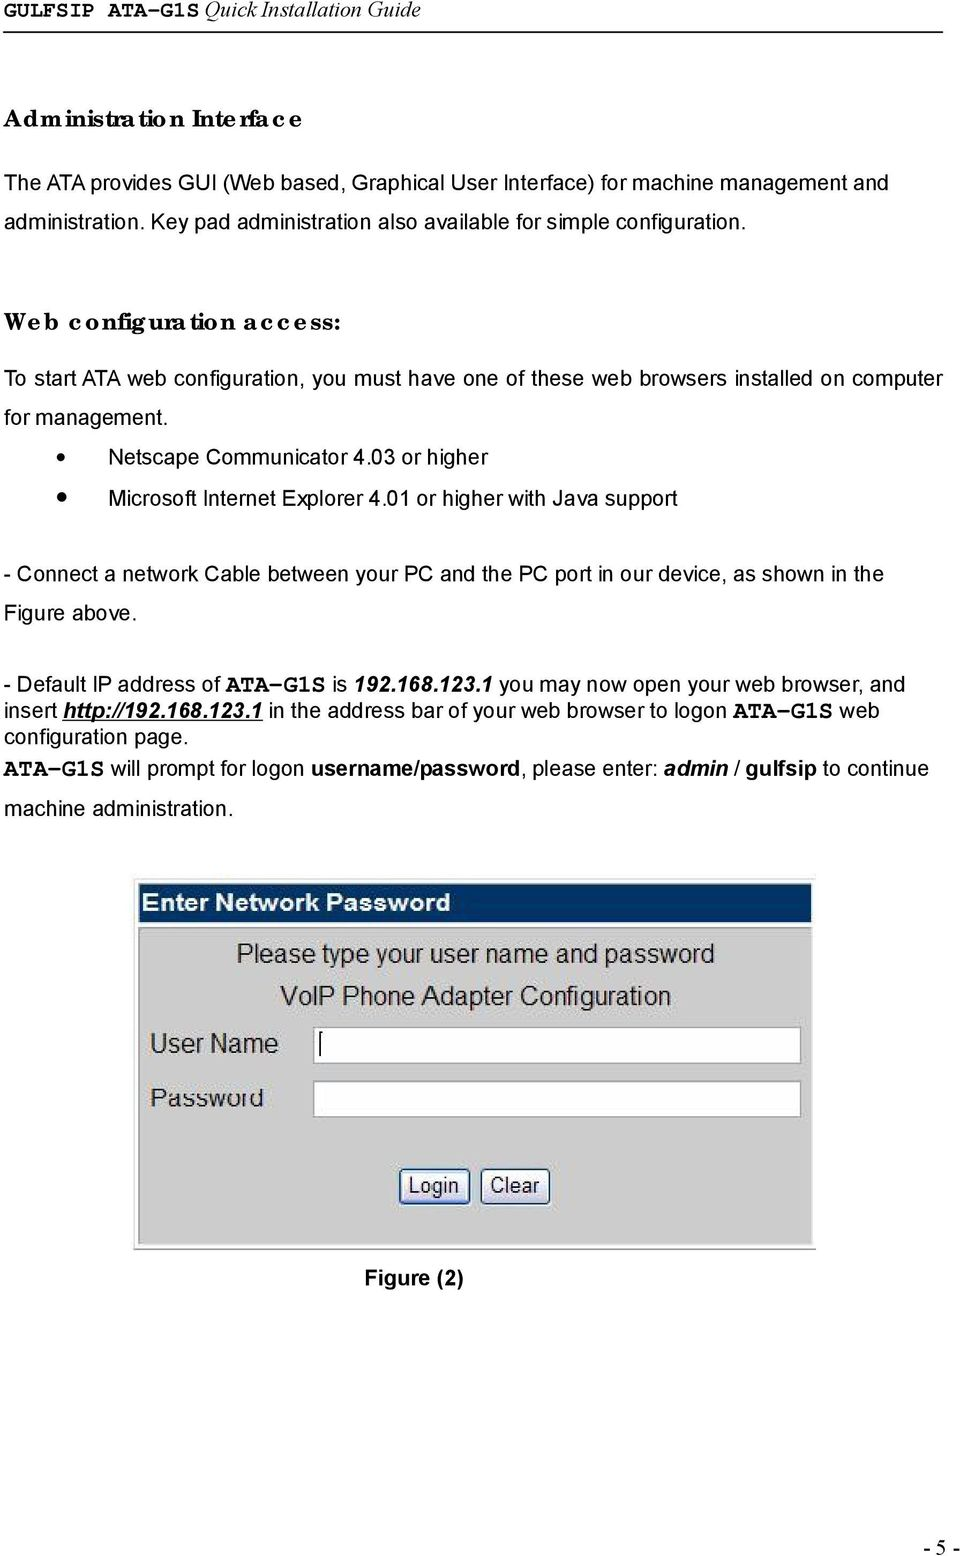 03 or higher Microsoft Internet Explorer 4.01 or higher with Java support - Connect a network Cable between your PC and the PC port in our device, as shown in the Figure above.